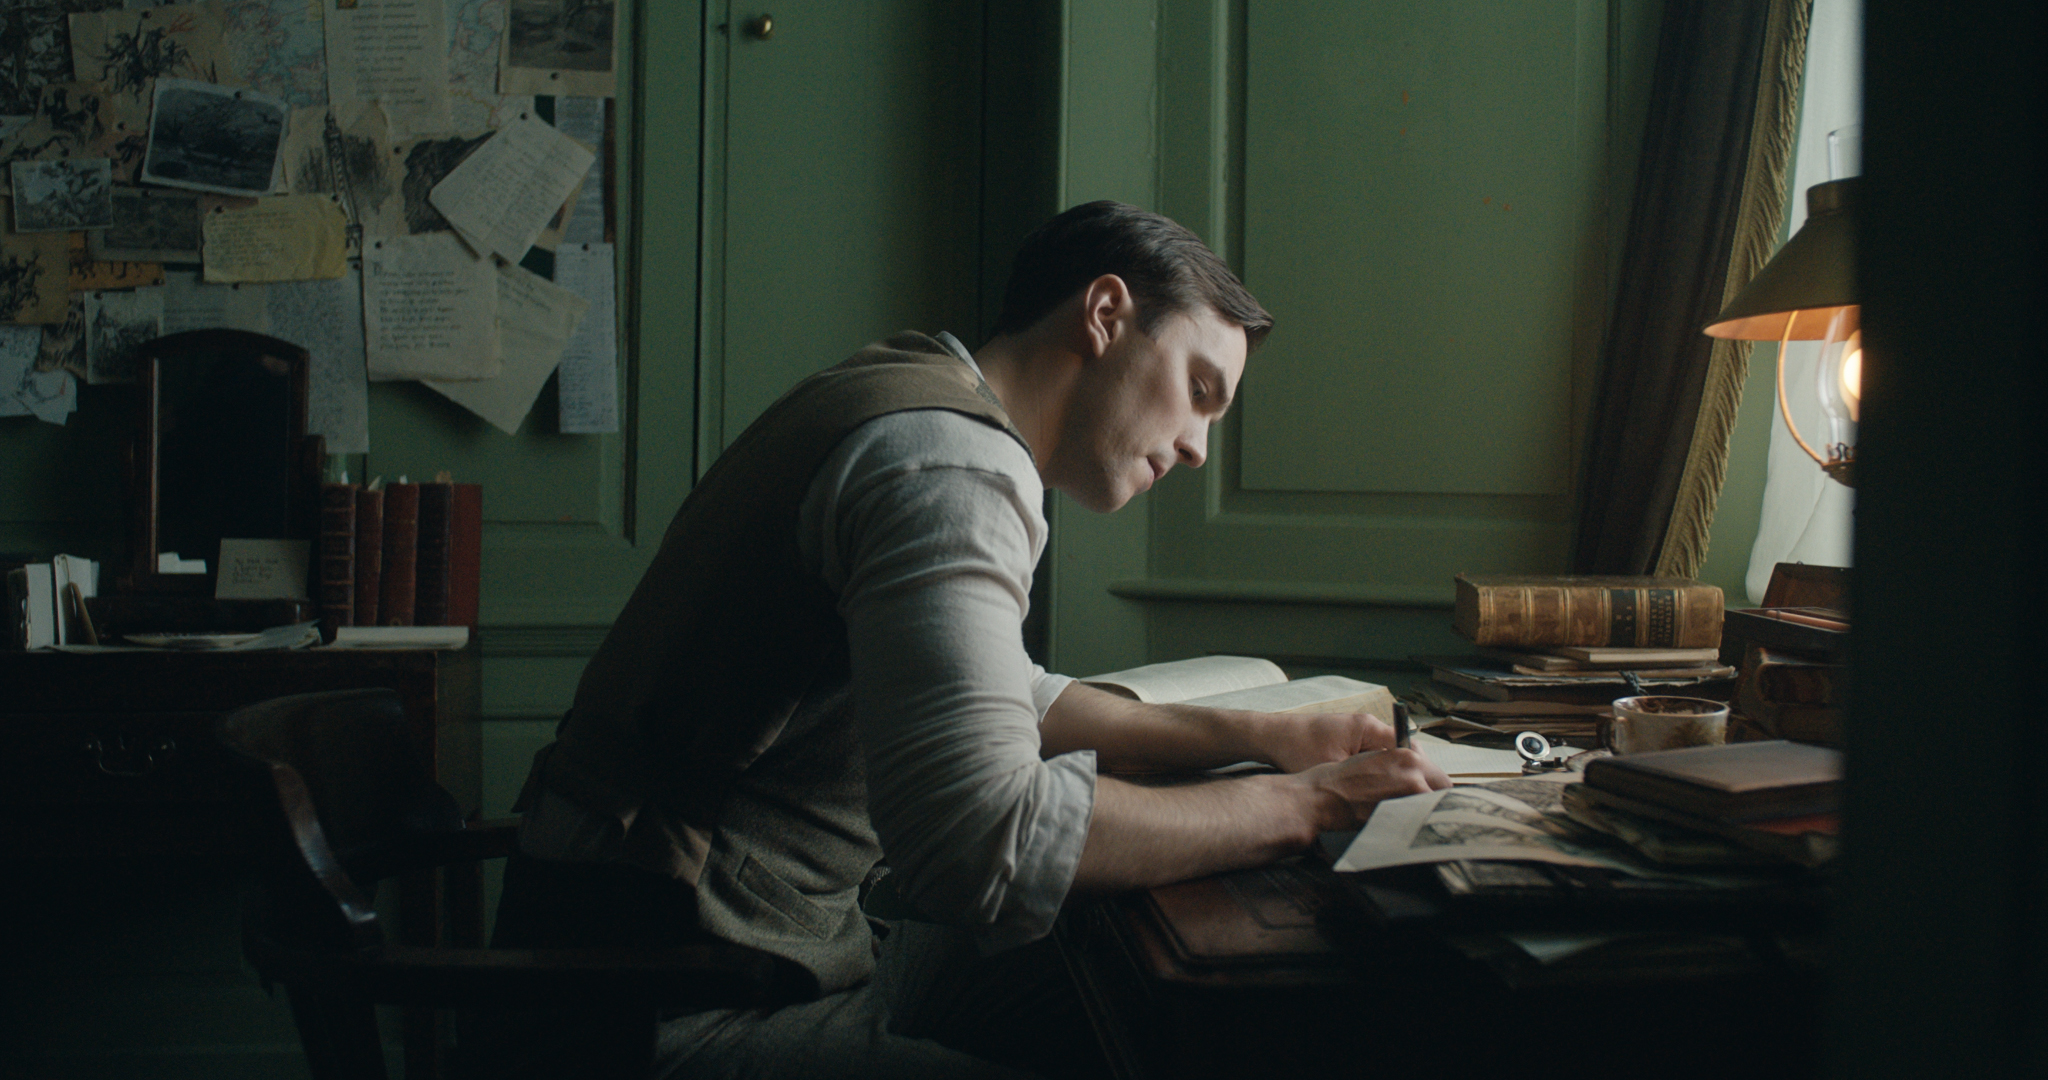 Nicholas Hoult in the film 'Tolkien.' © 2019 Twentieth Century Fox Film Corporation All Rights Reserved